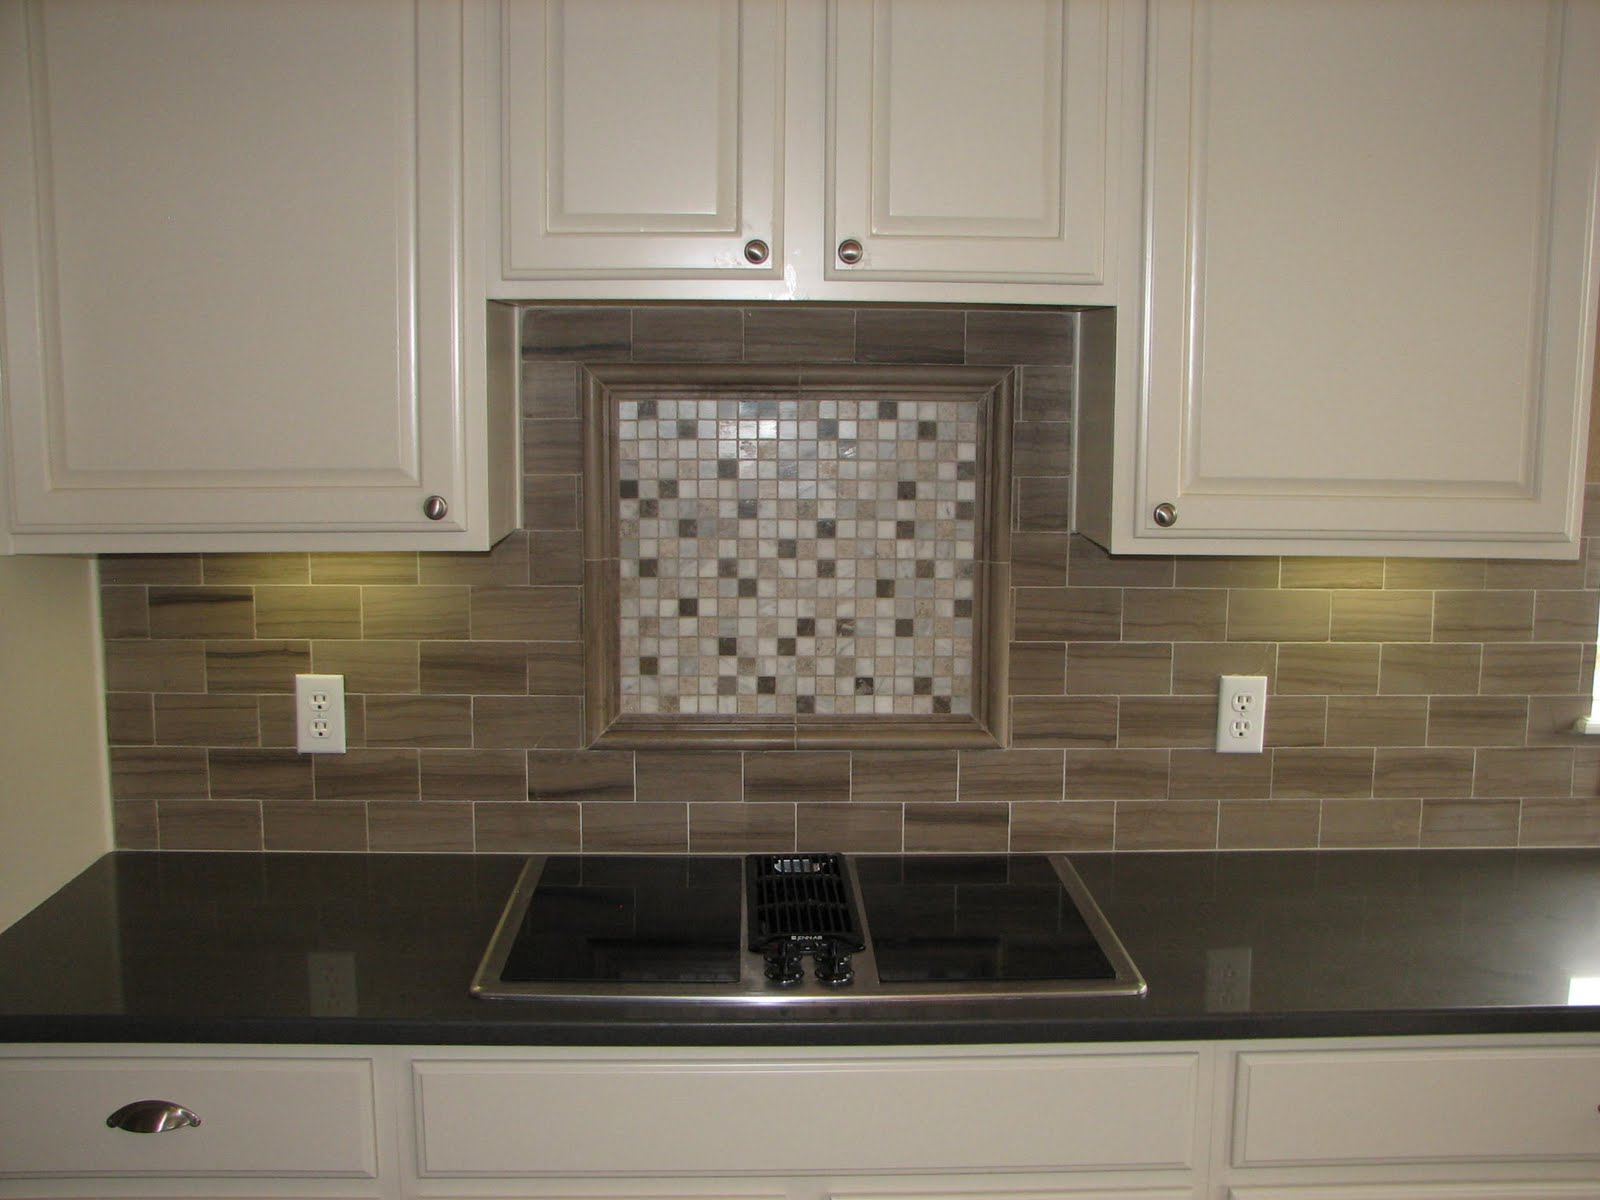 Integrity installations a division of front range backsplash tile backsplash Design kitchen backsplash glass tiles